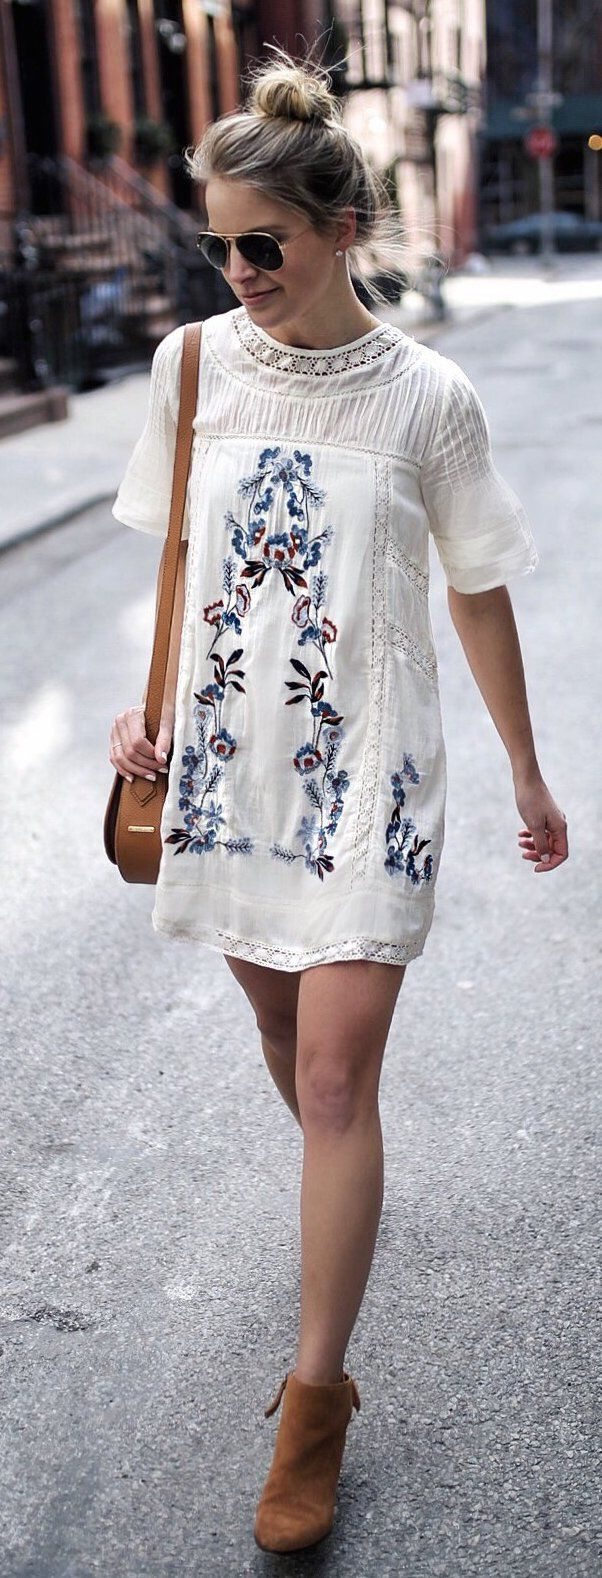 best 25+ printed dresses ideas on pinterest | casual work dresses